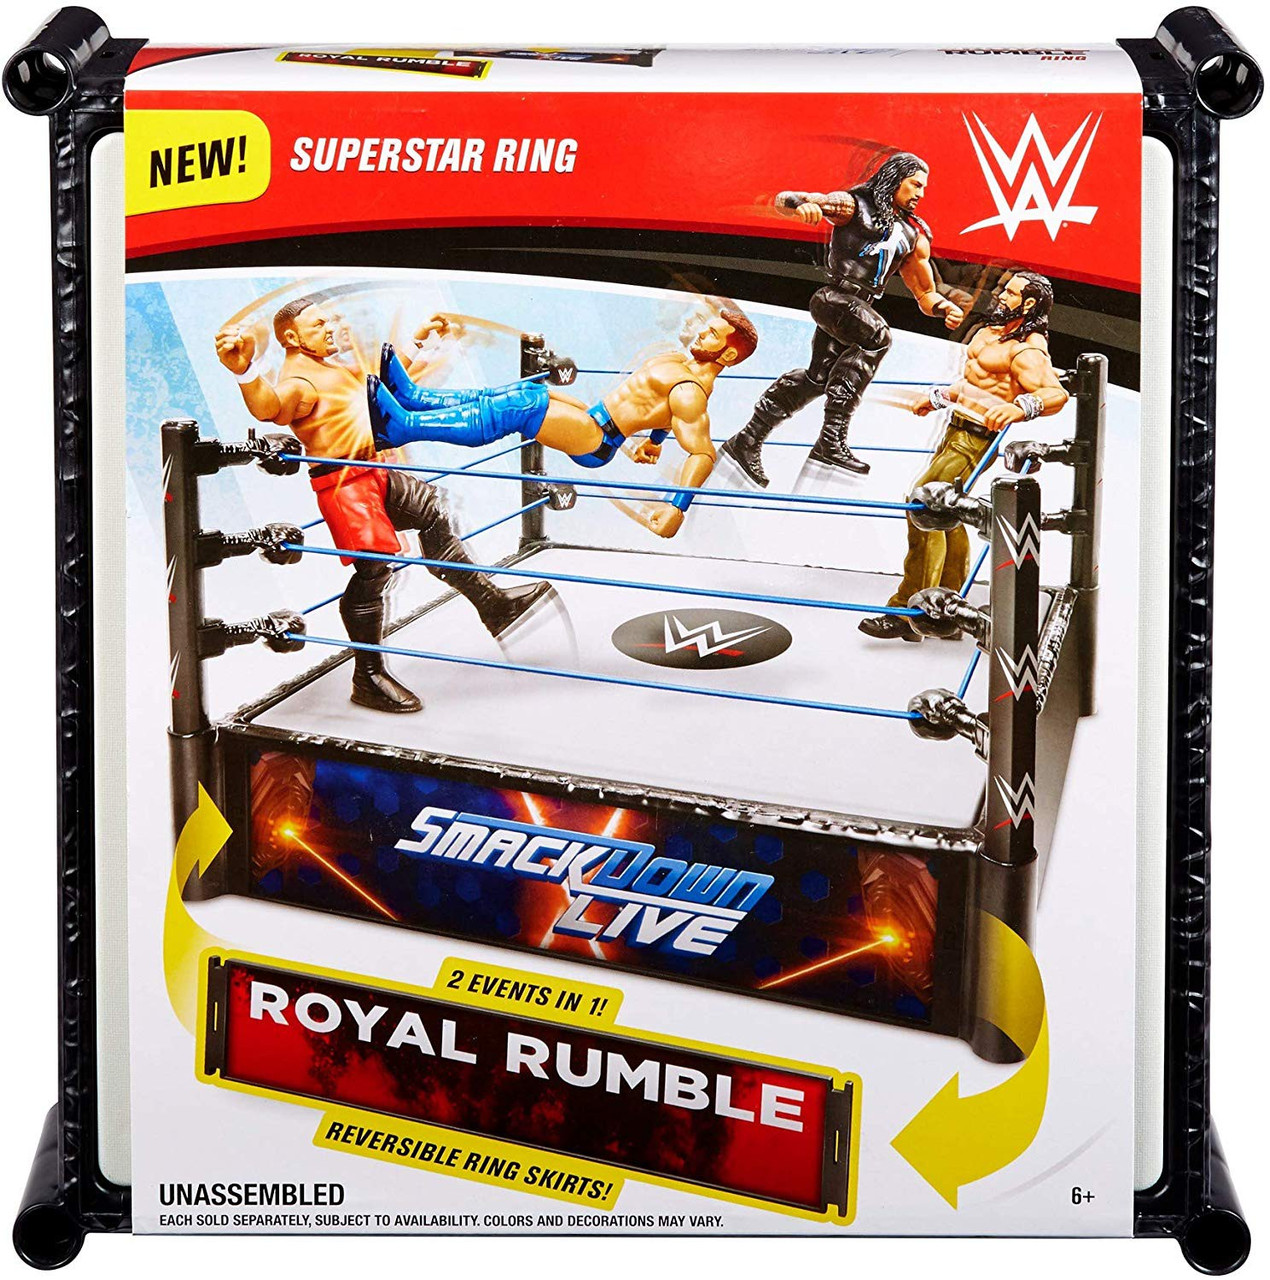 WWE Smackdown Live Main Event Ring a first-inthe-line 6-inch Jinder Maha action